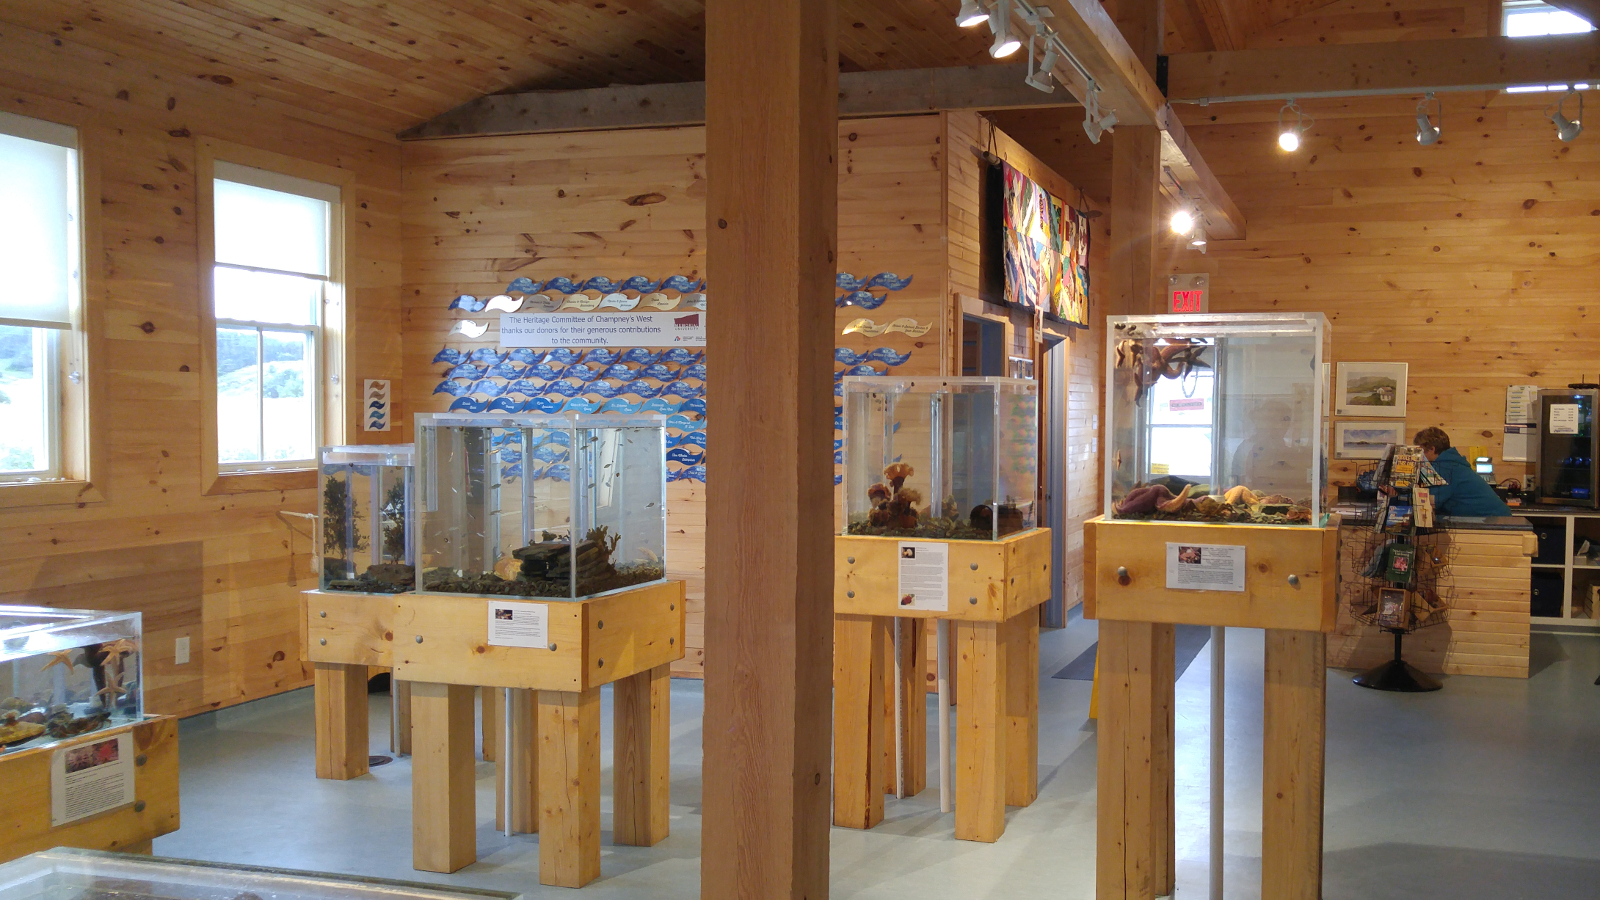 Classes currently offered by the Department of Ocean Sciences will be mounted in Champney's West, a small community located in Trinity Bay, which is home to an aquarium and teaching laboratory.